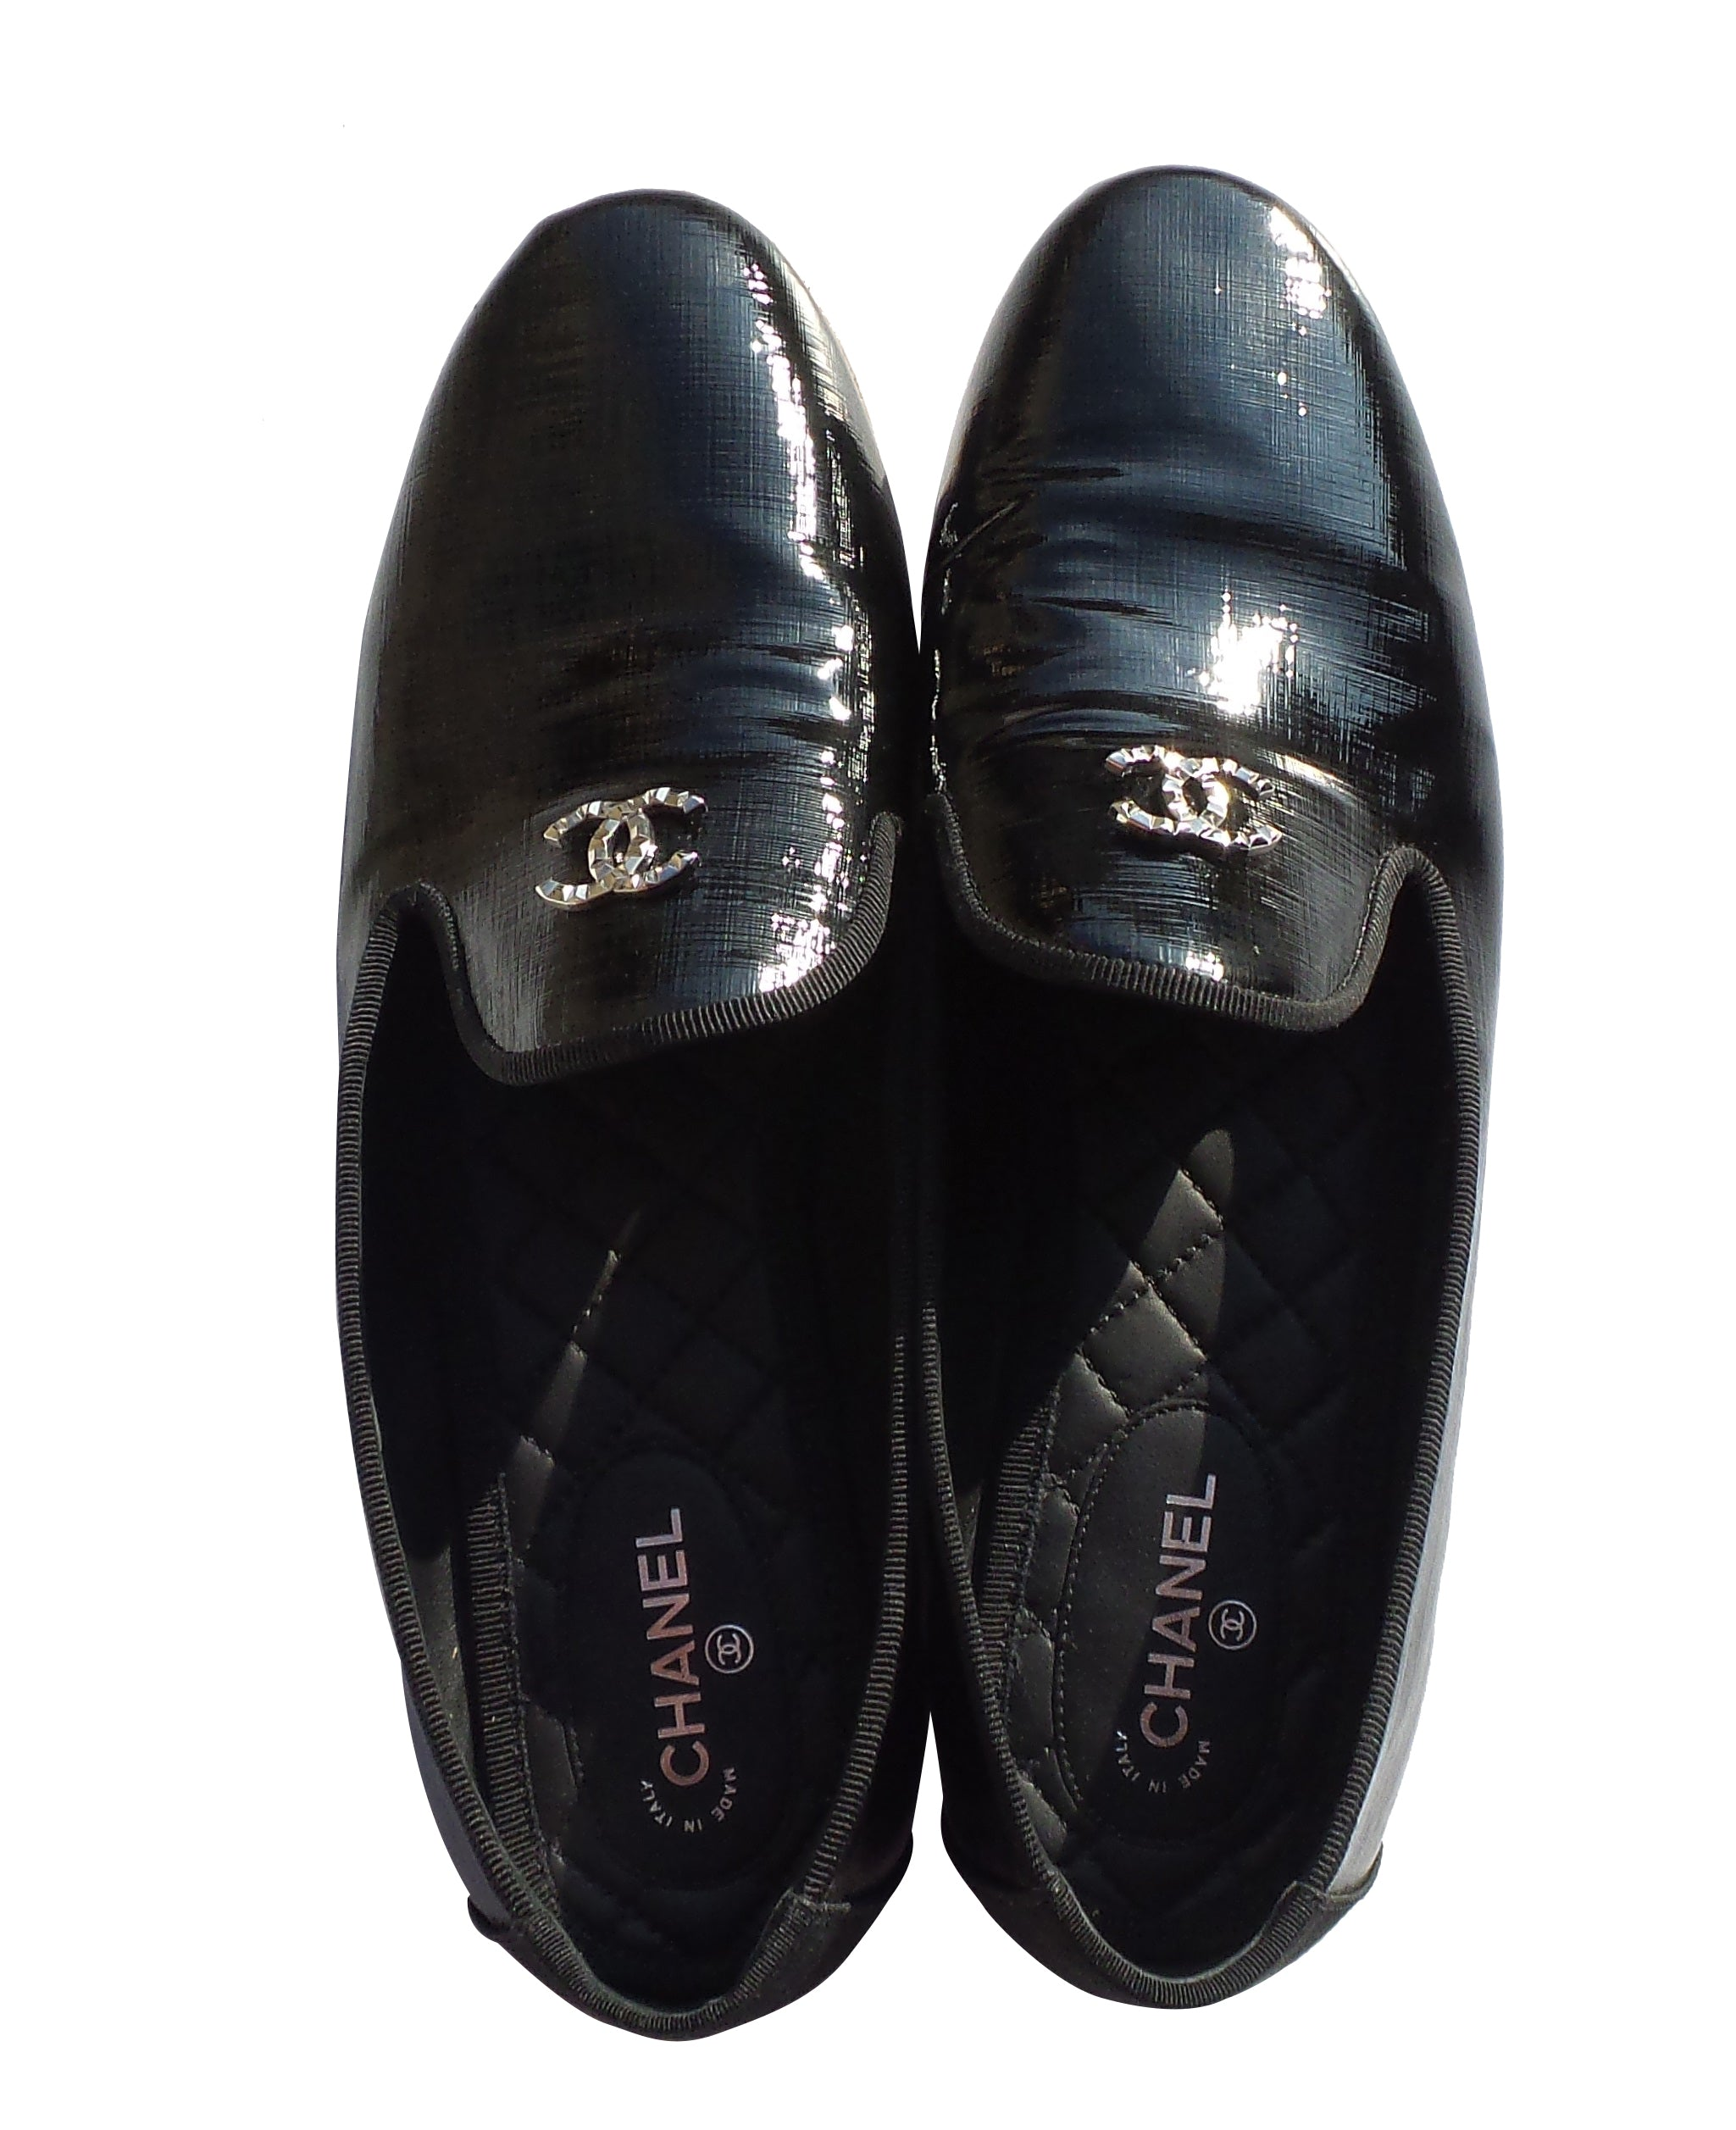 'Sold' CHANEL 16P Black Patent Leather Loafers Flats Moccasins 41